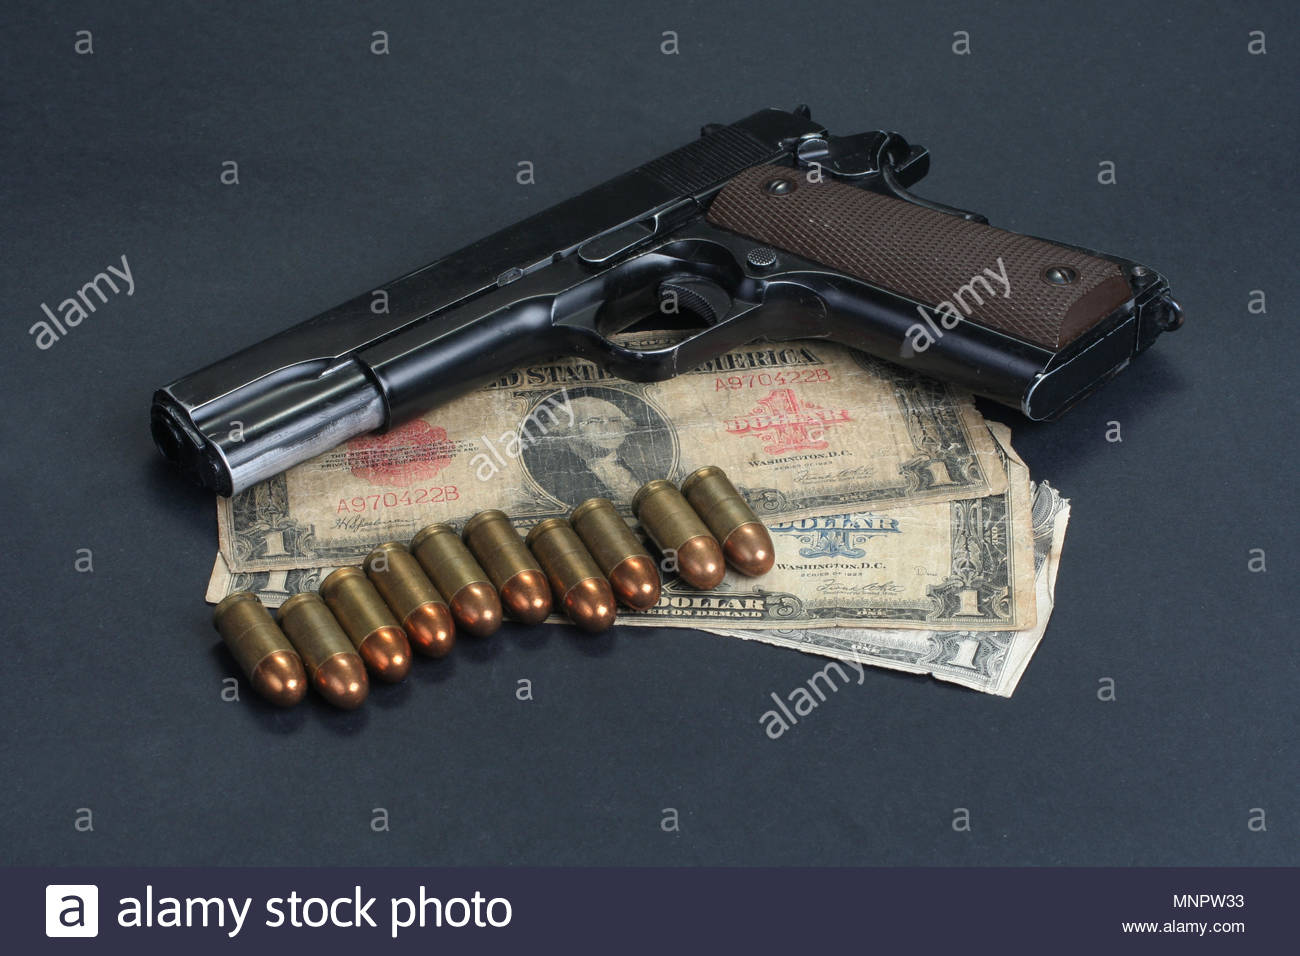 colt goverment M1911 on black background Stock Photo 185514087 1300x956